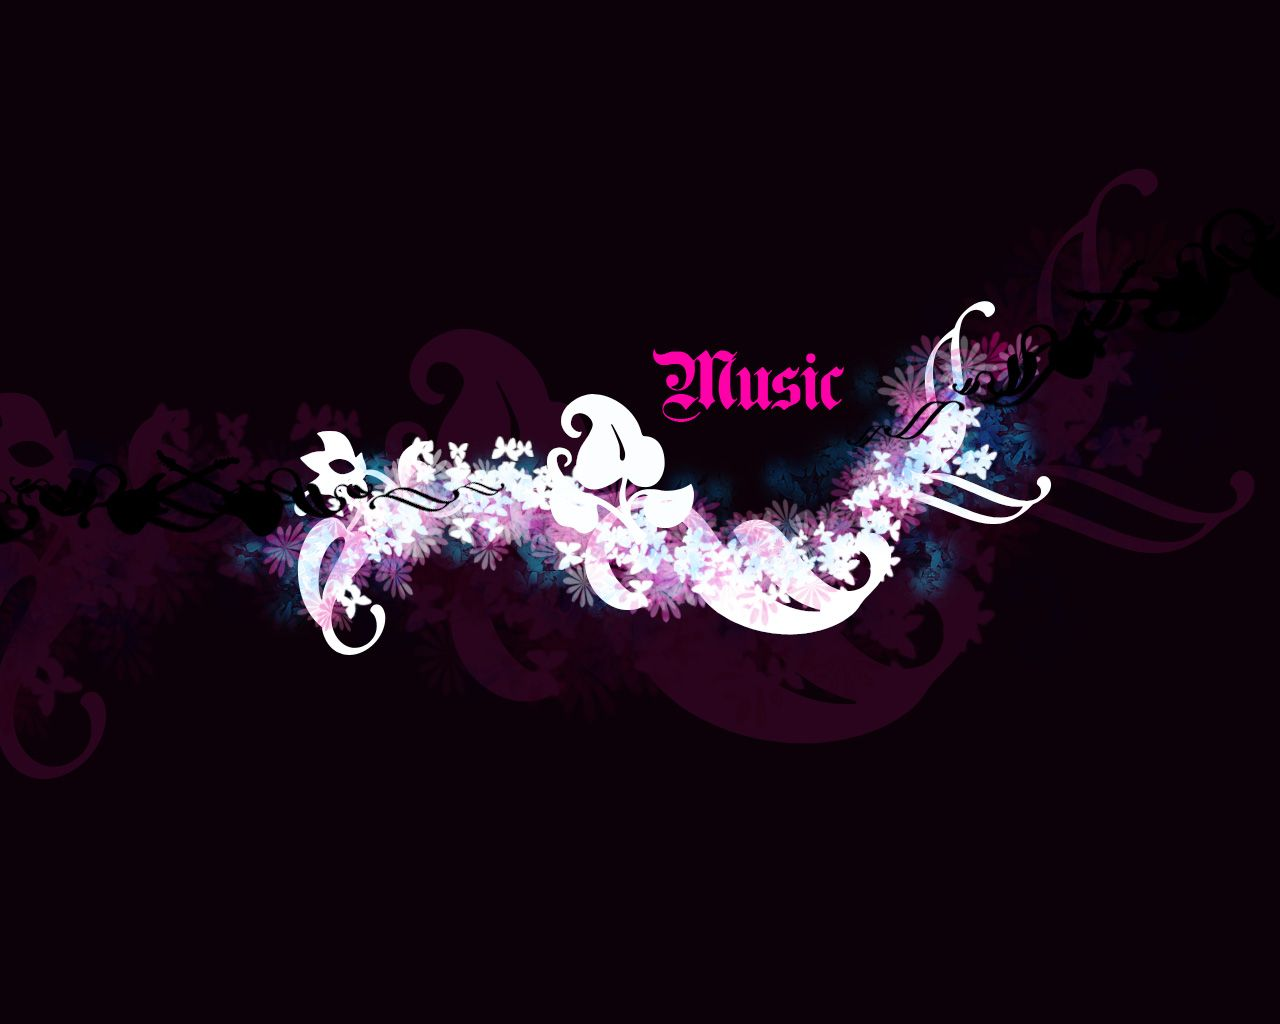 Music Wallpaper Christian Wallpapers And Backgrounds 1280x1024